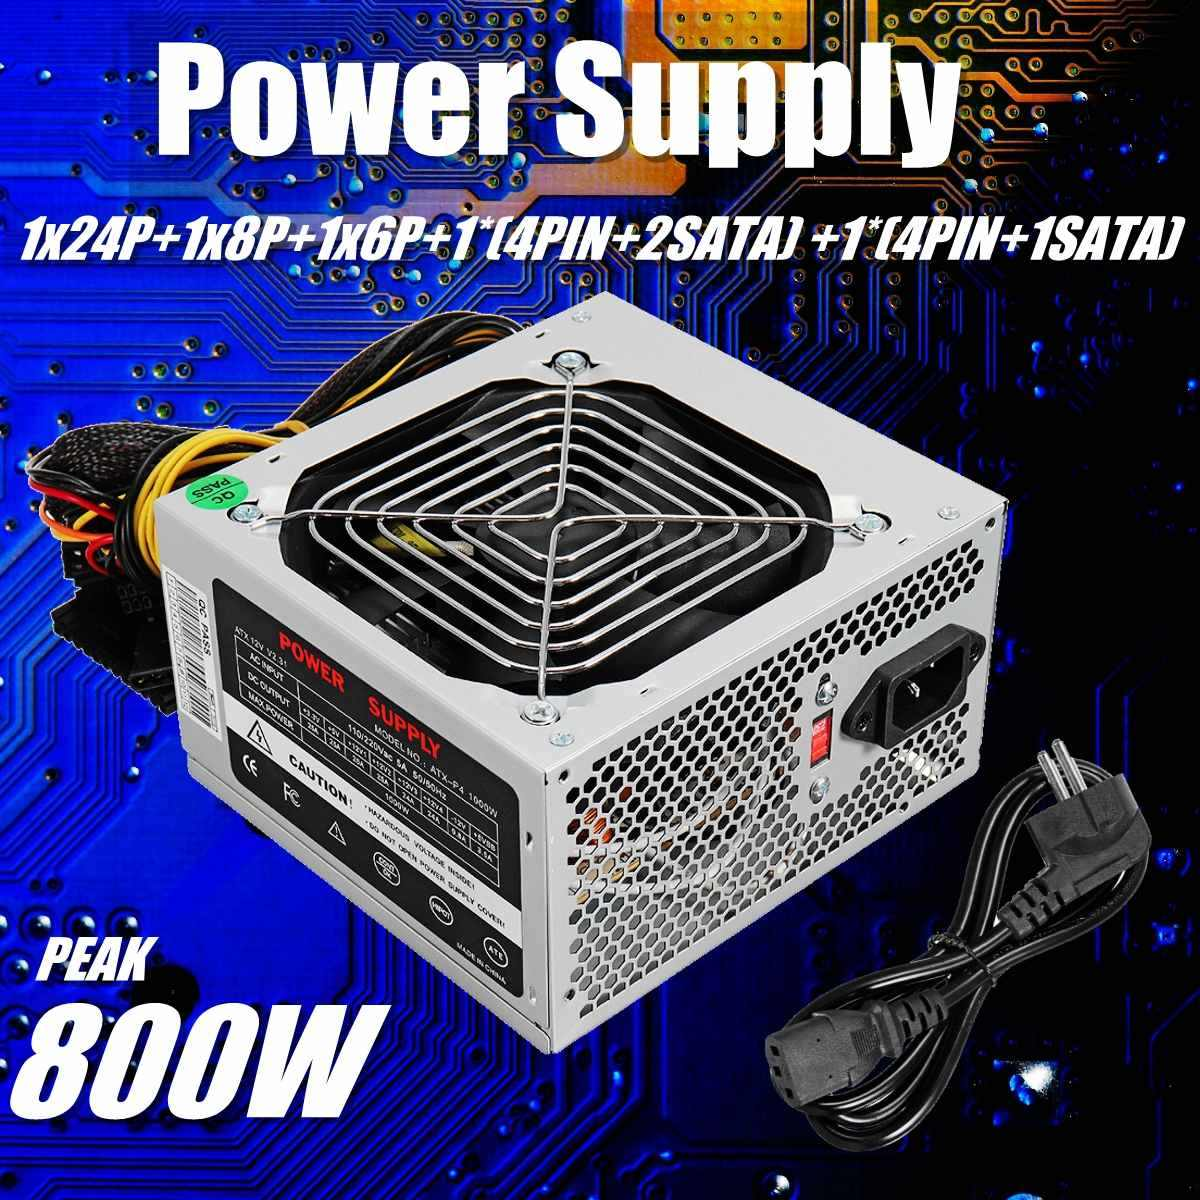 Max 800W Power Supply PSU PFC Silent Fan ATX 24-PIN 12V Komputer PC SATA PC Game power Supply untuk Intel Amd Komputer